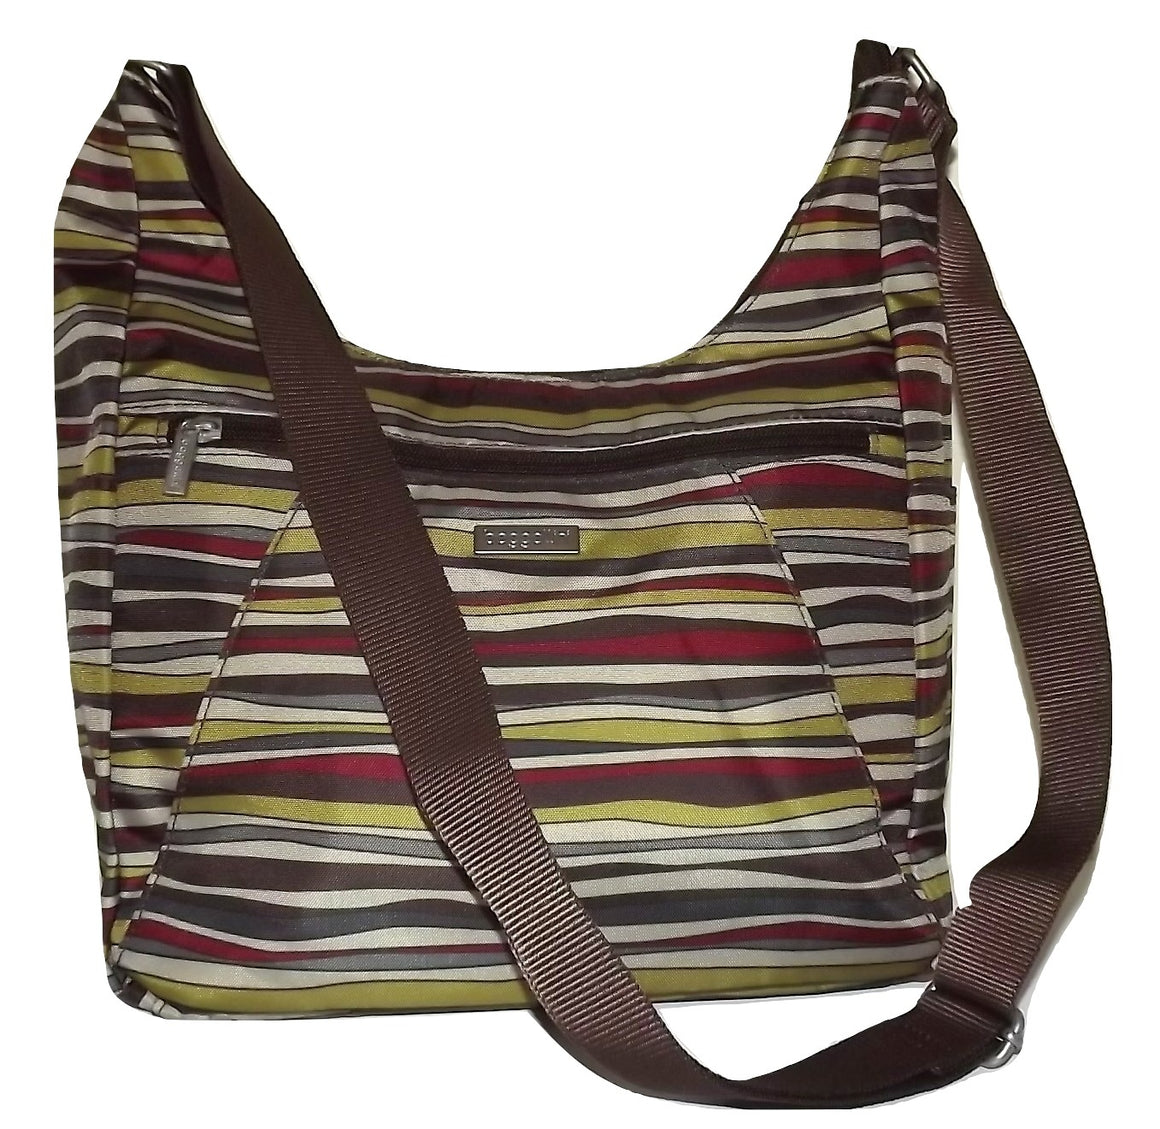 Baggallini Voyage Hobo Tote Crossbody Bag Multi Stripe